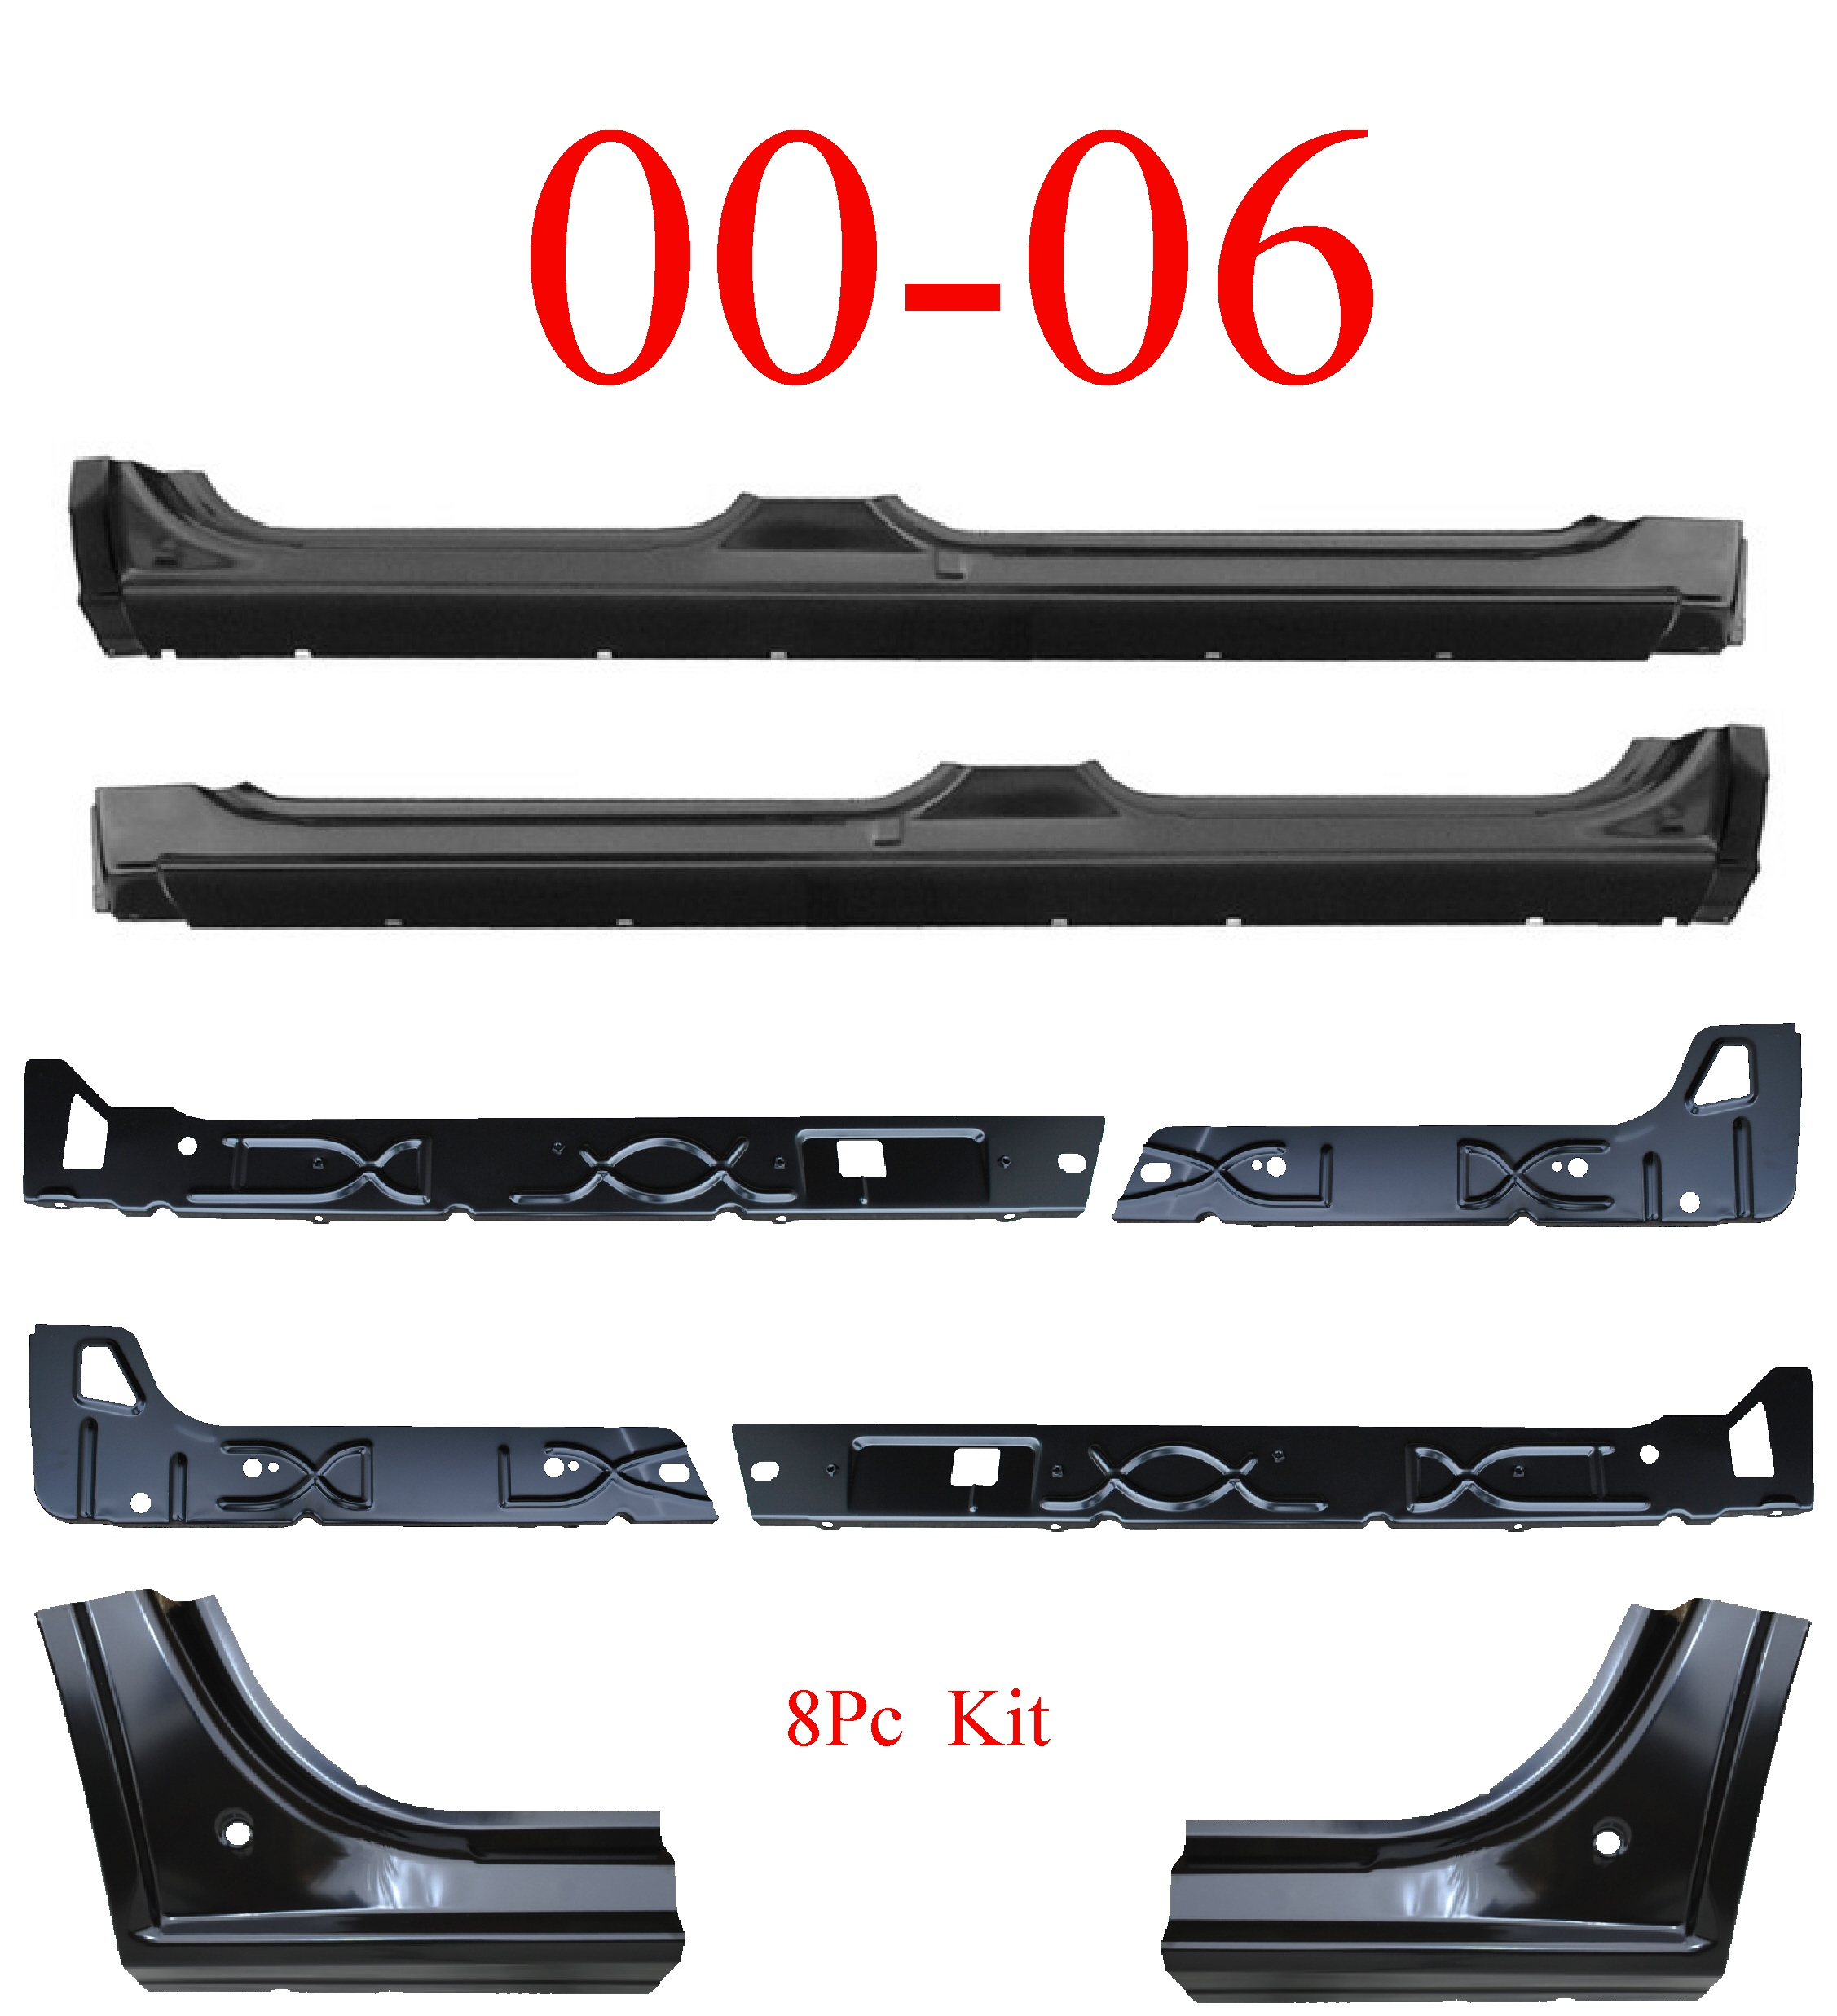 00-06 Chevy Tahoe 8Pc Extended Rocker, Inner & Dog Leg Kit